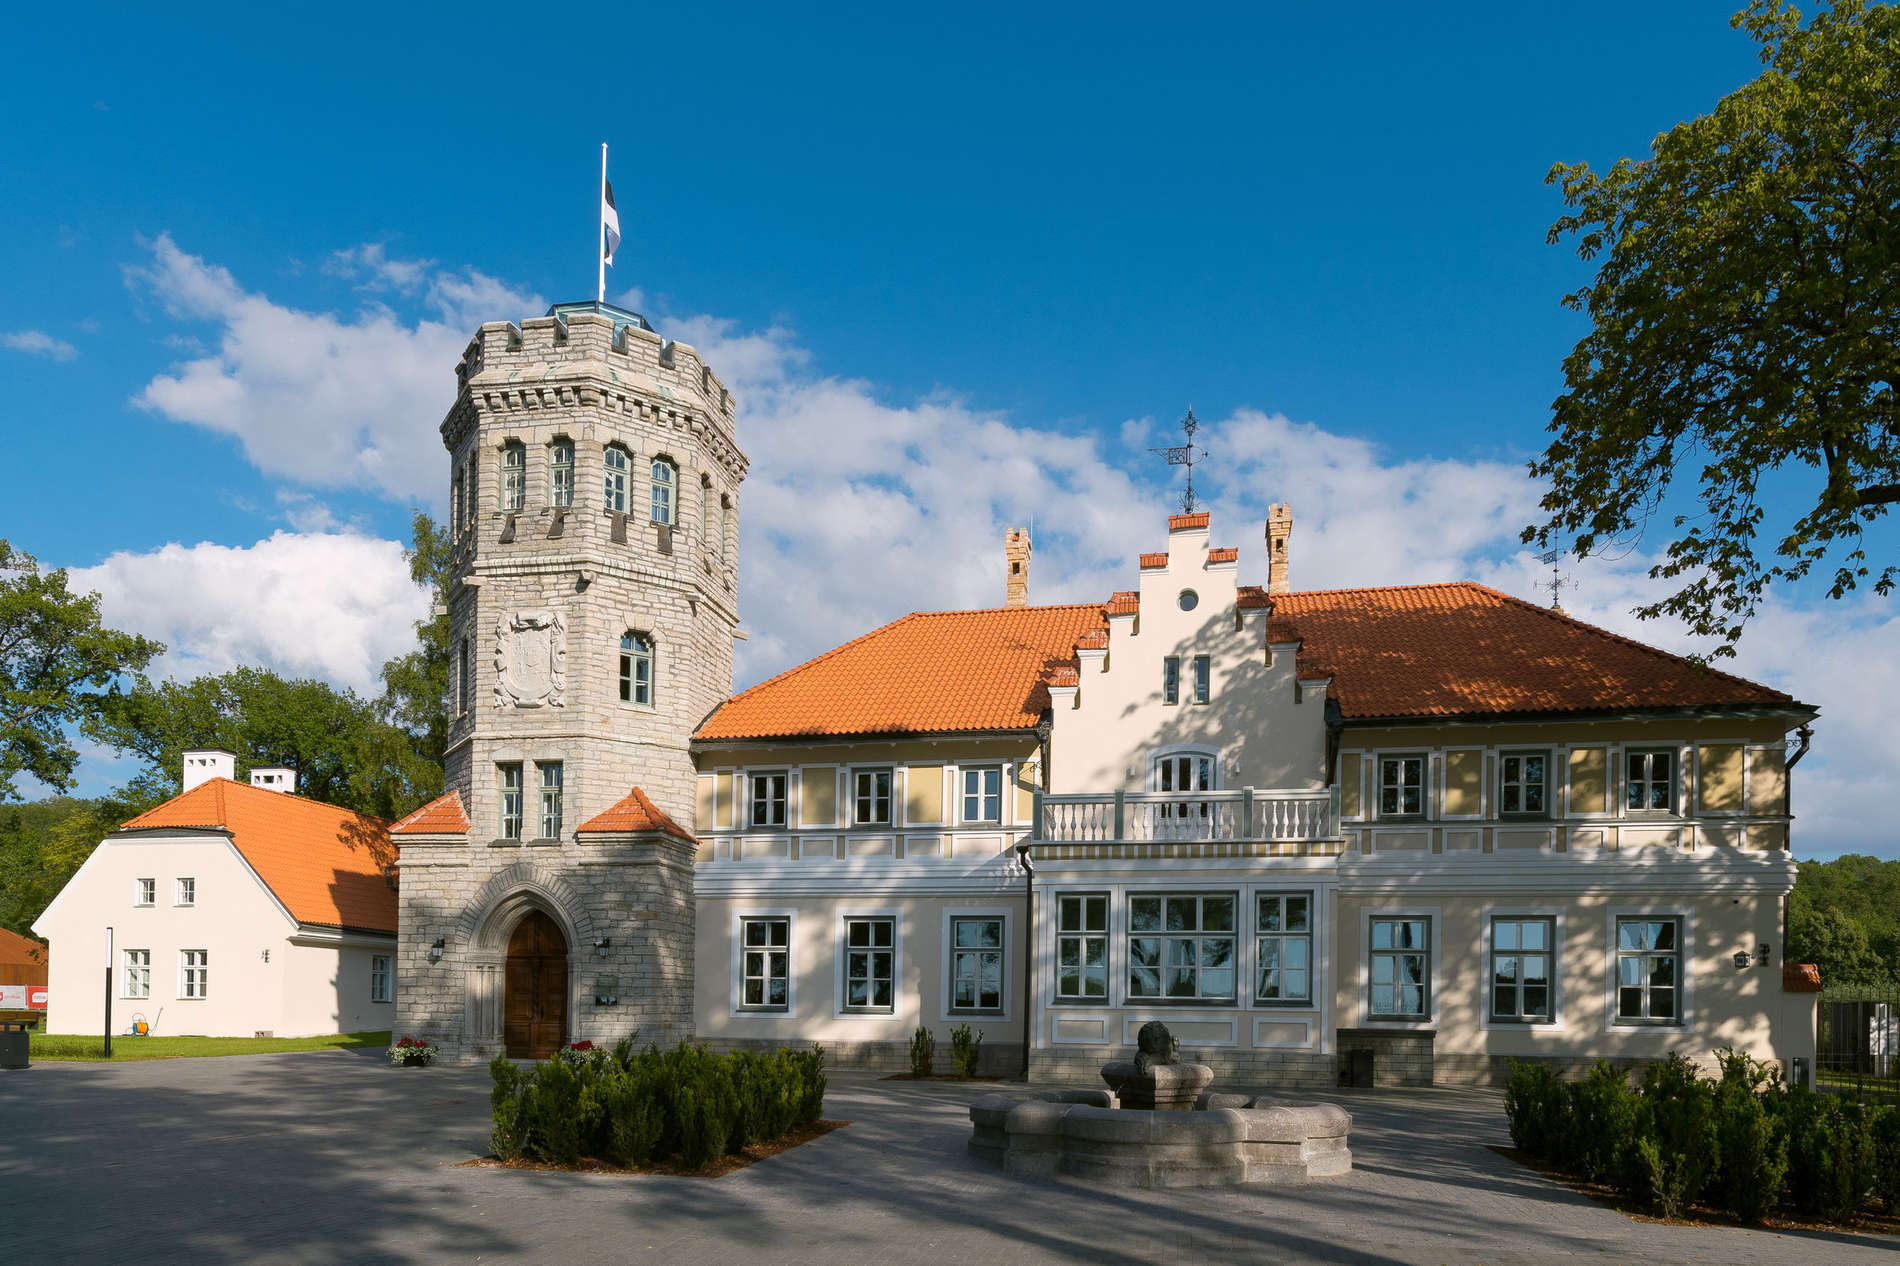 External view of the Maarjamäe Palace - Estonian History Museum in Tallinn, Estonia.